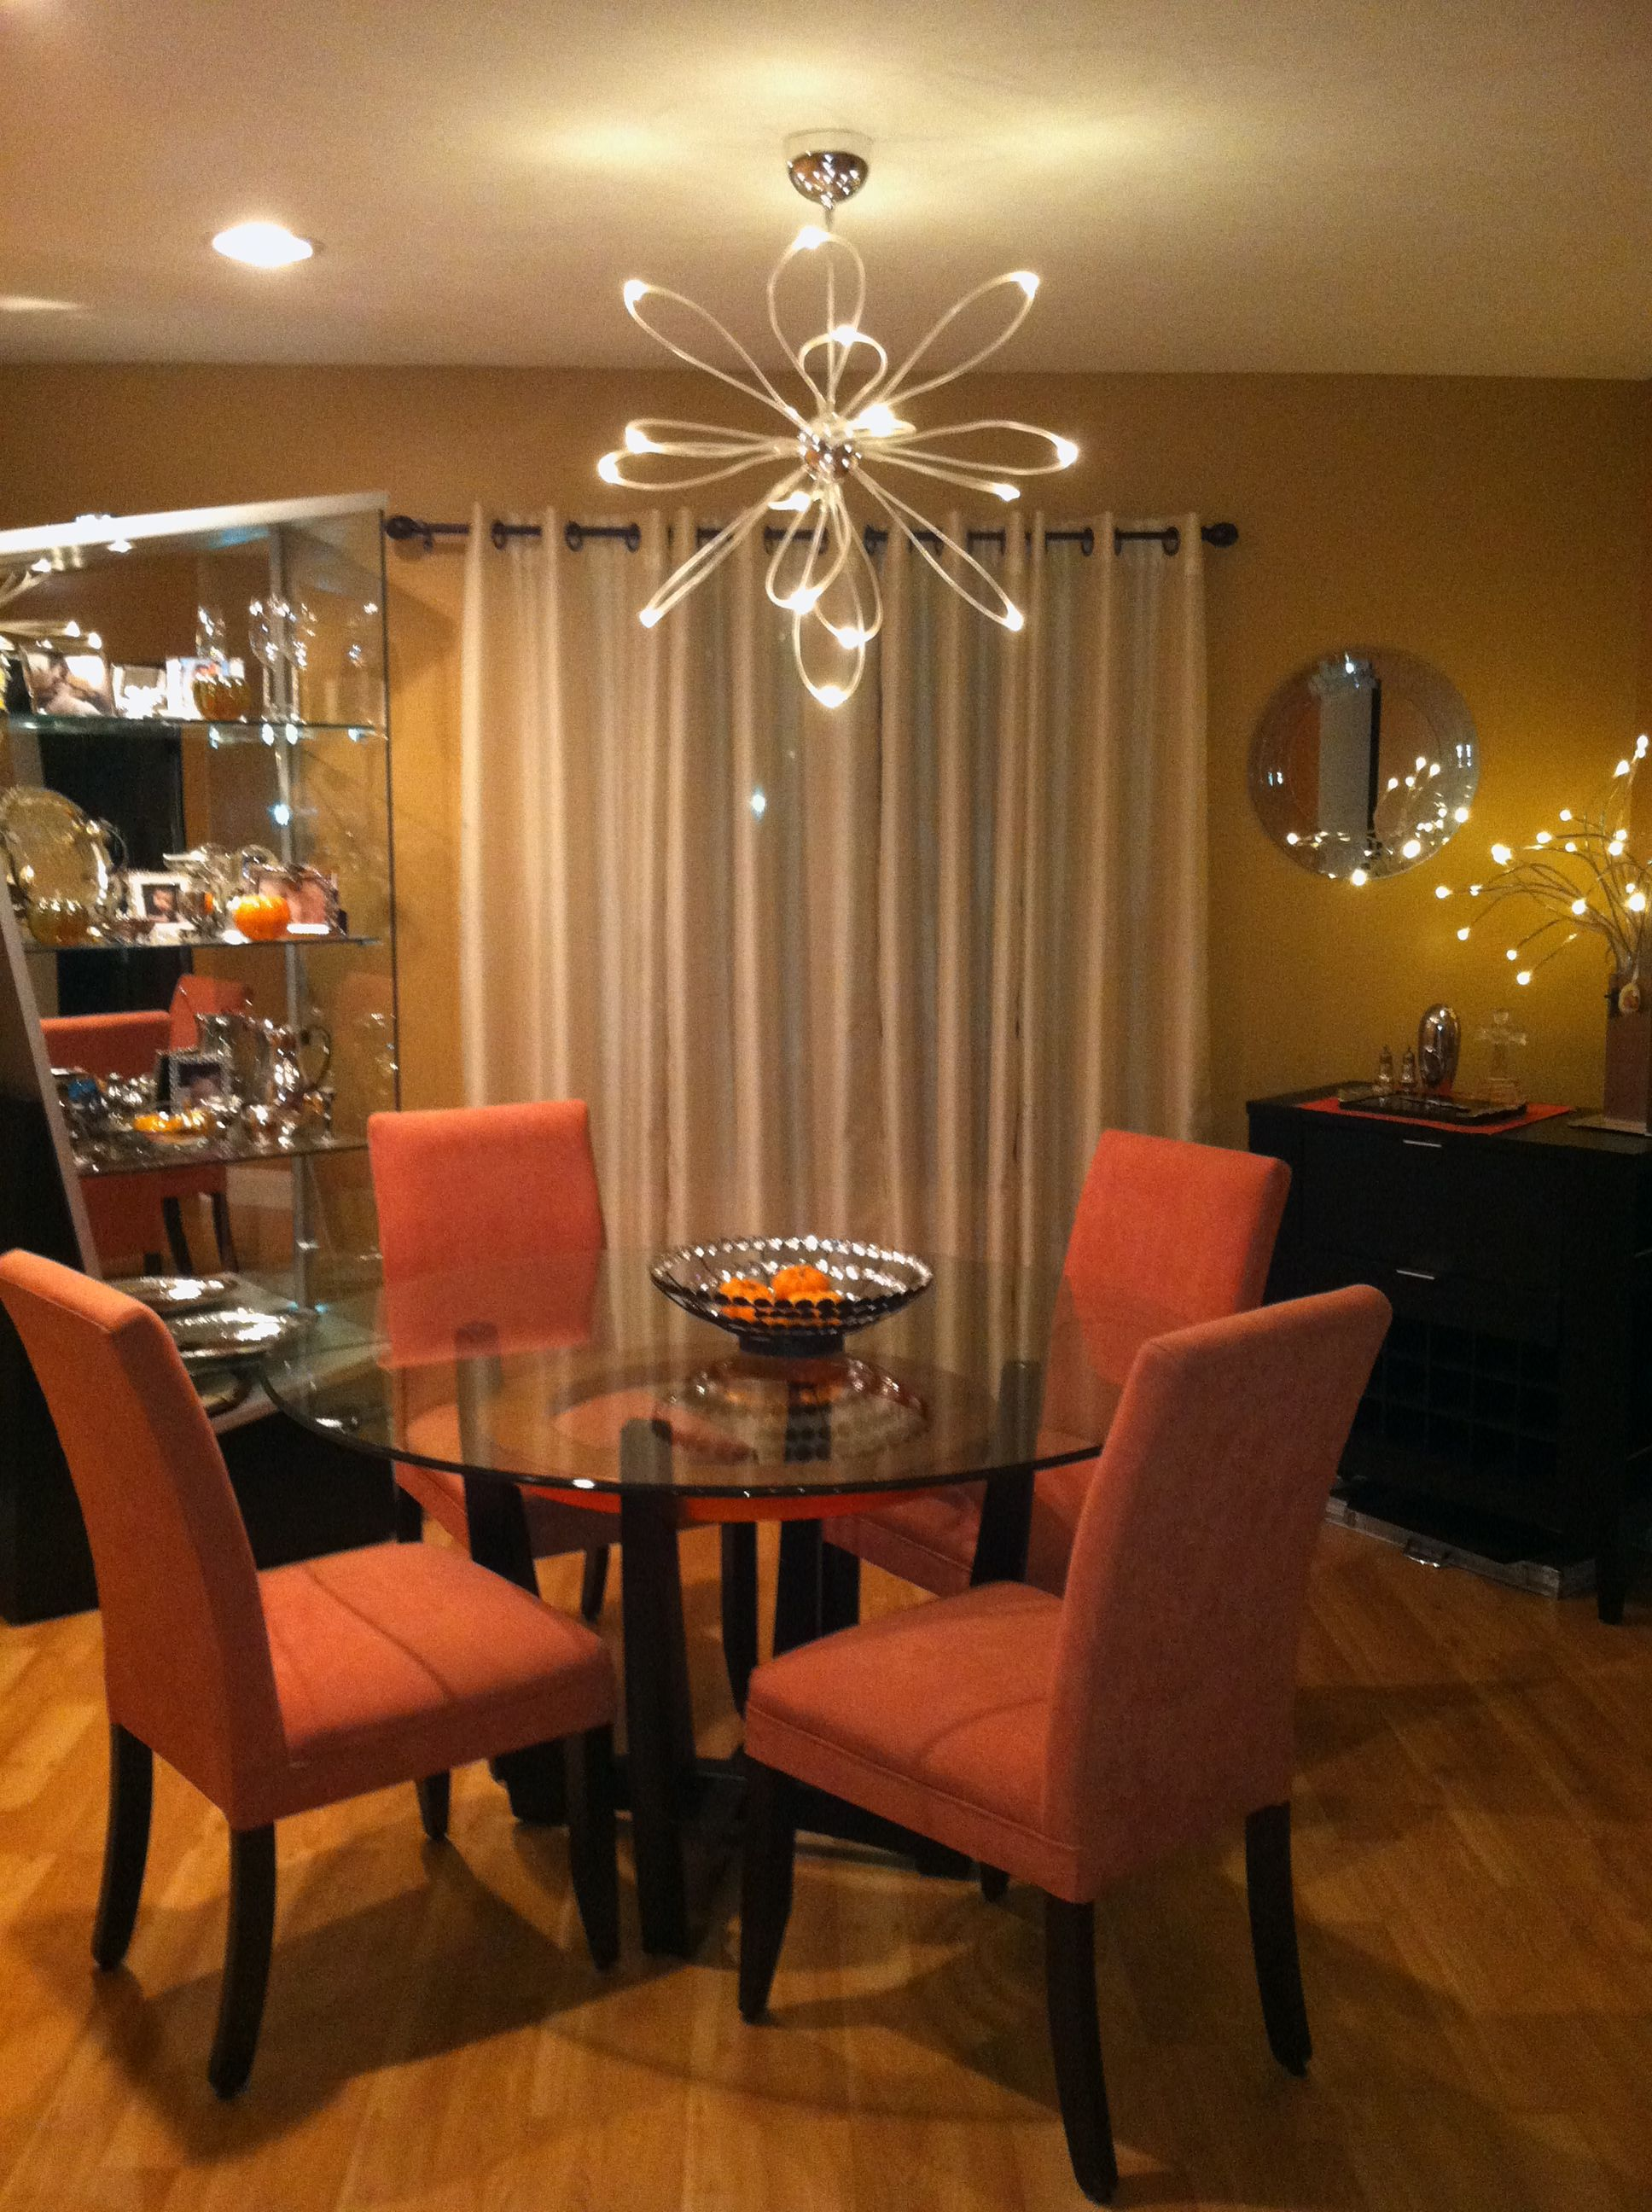 Funky Lighting Fun Dining Room Table Chairs Simple Curtains My House